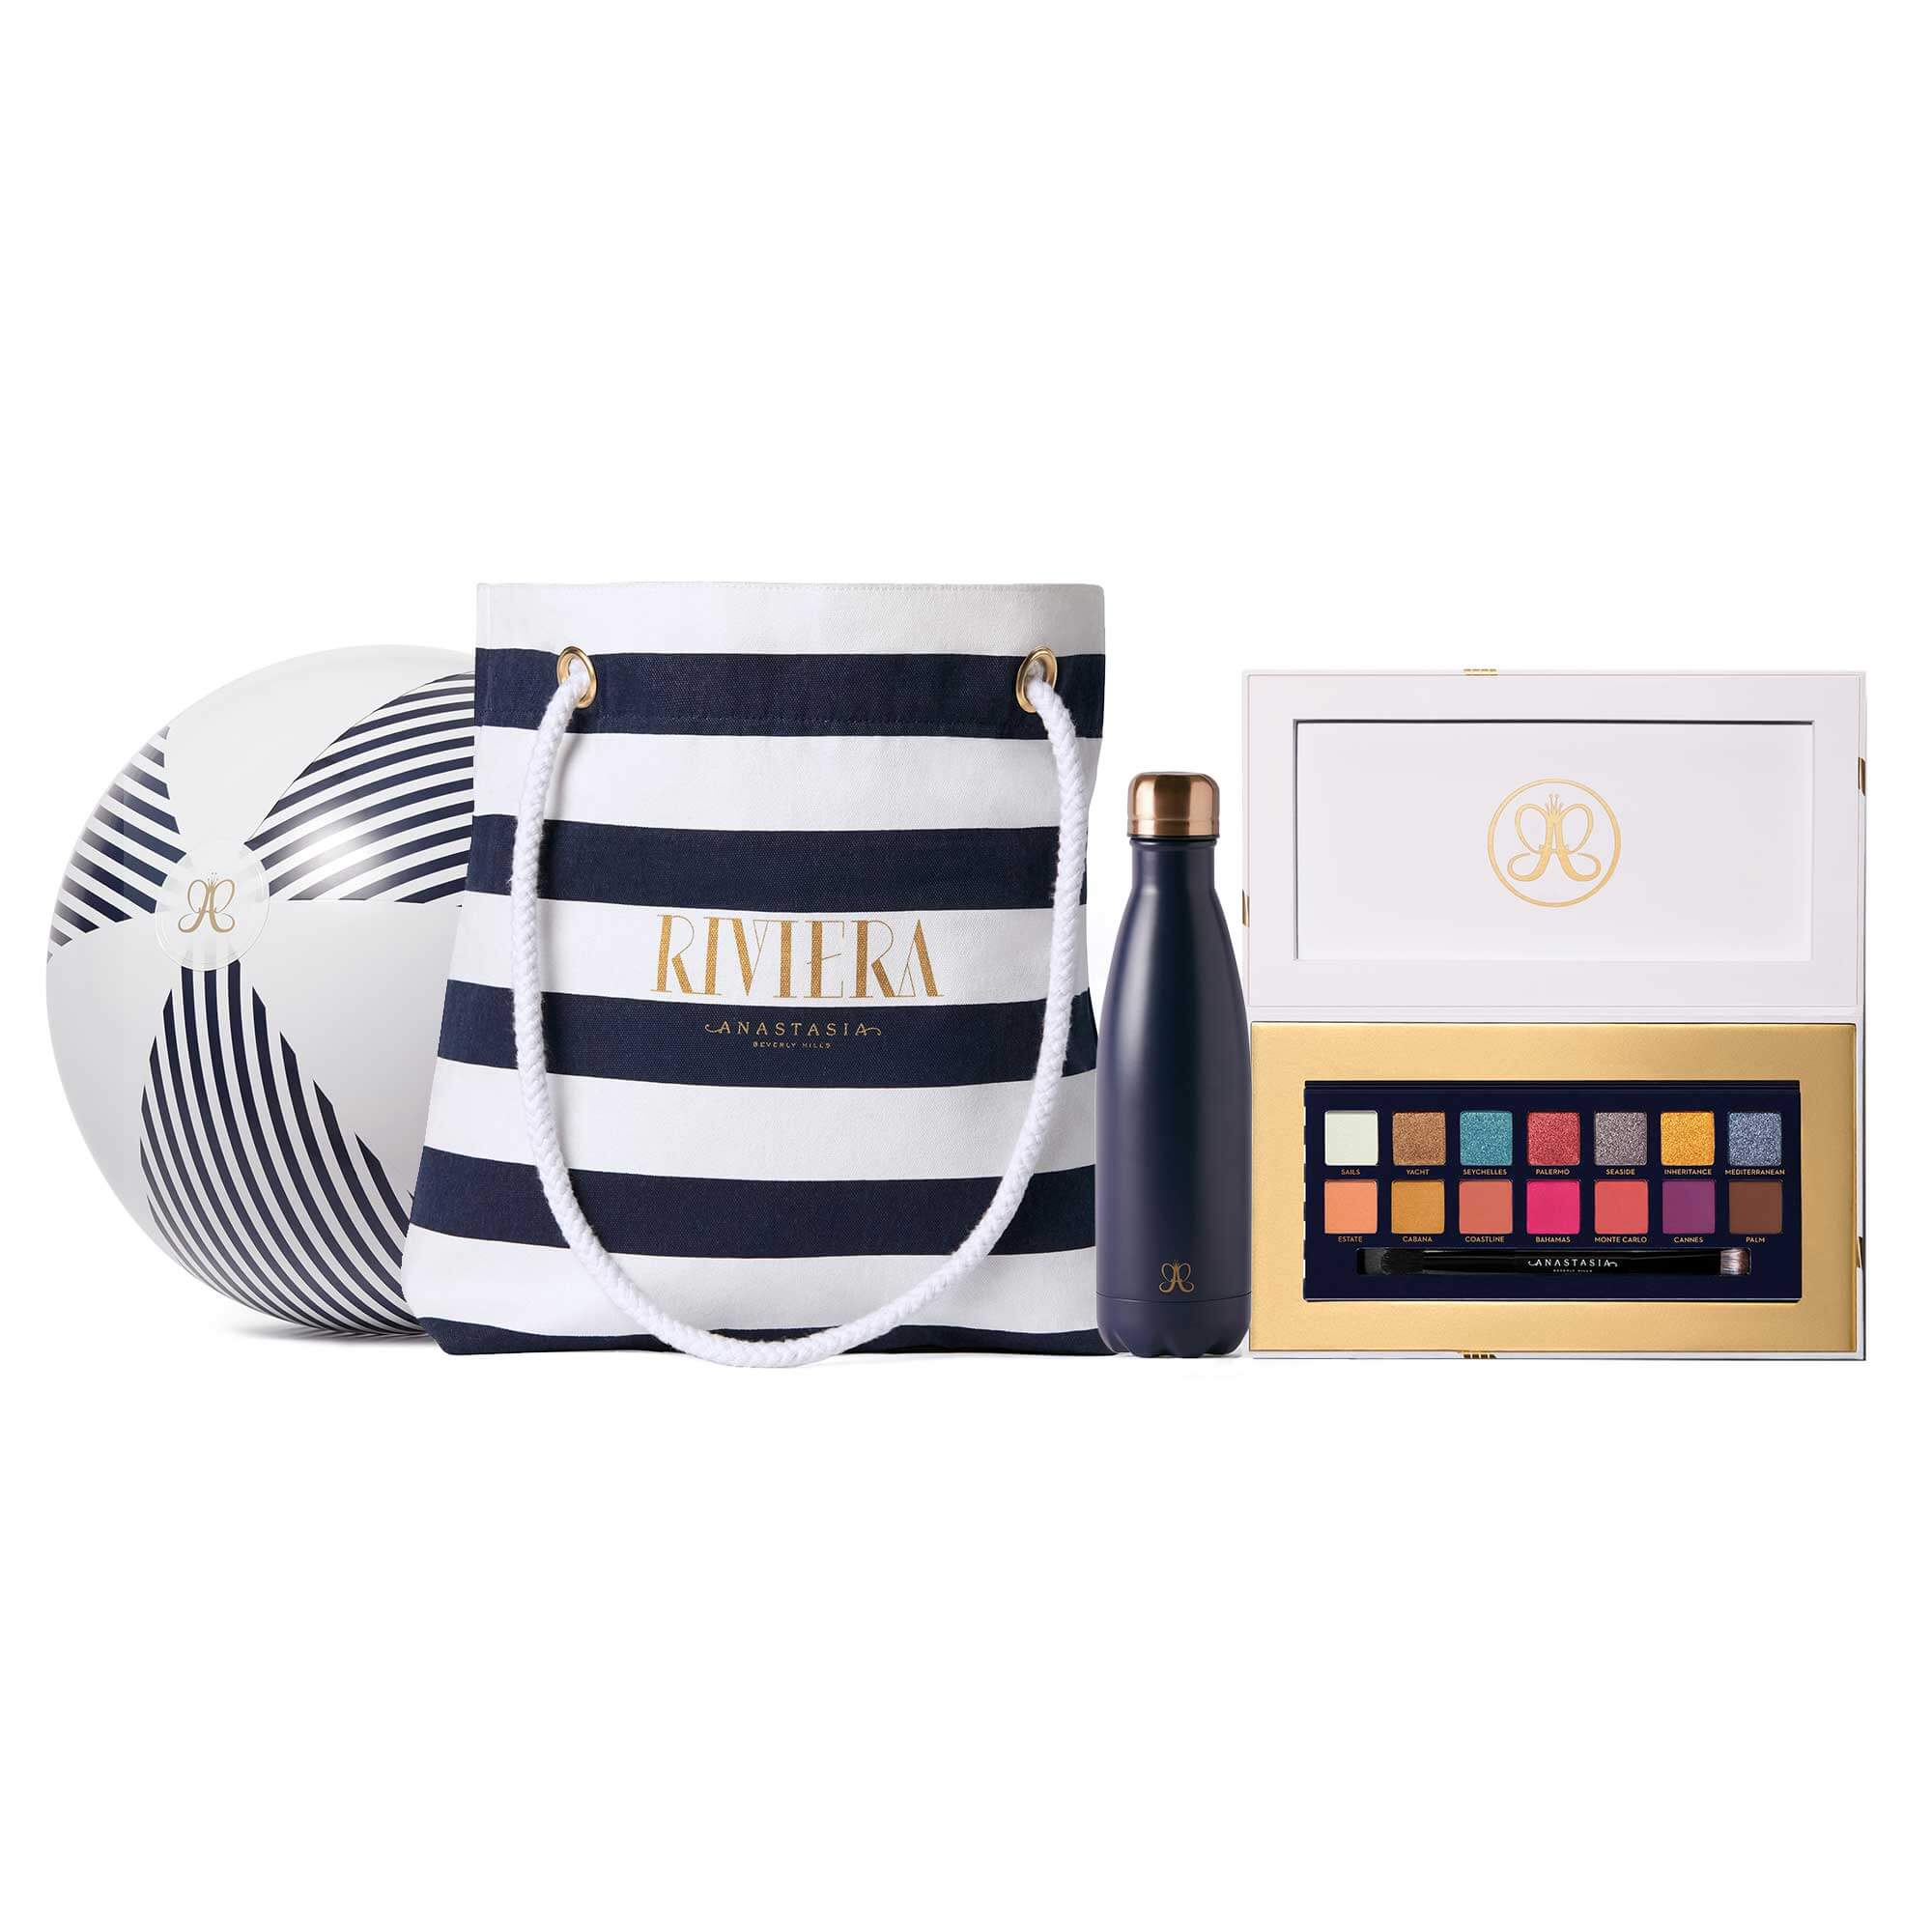 Riviera Palette Launch Edition